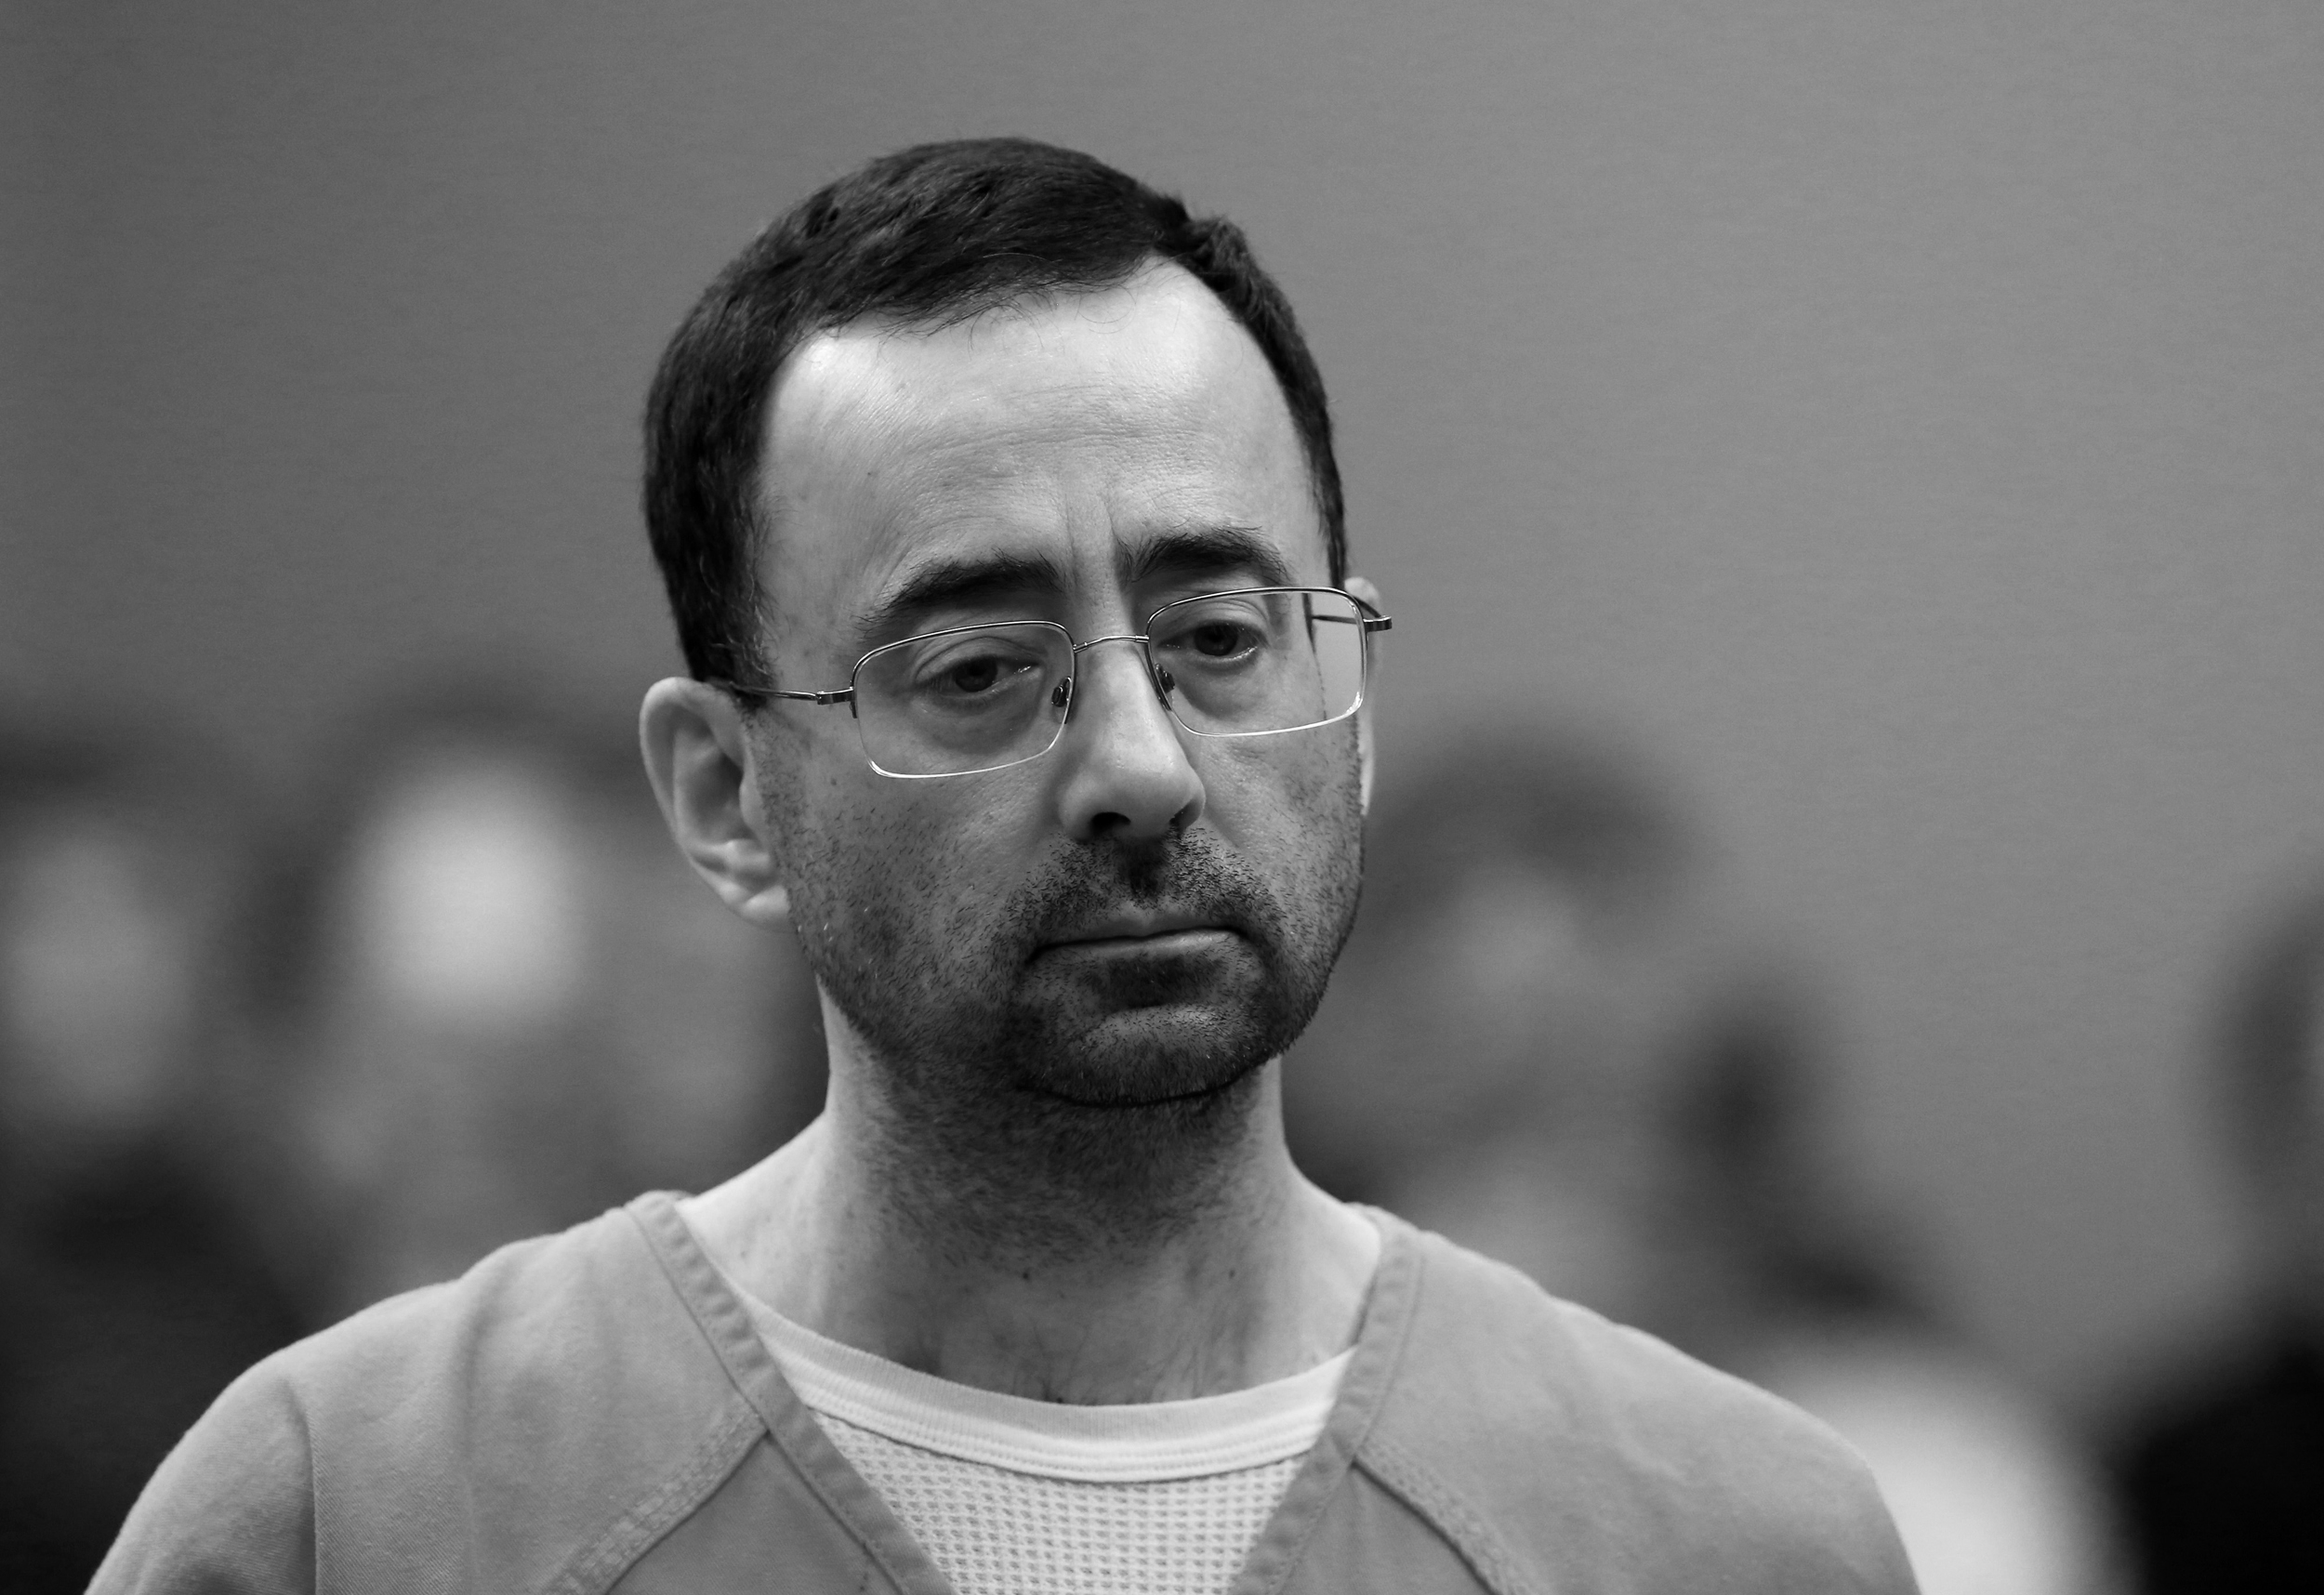 Simone Biles just highlighted the scariest part of Larry Nassar's crimes